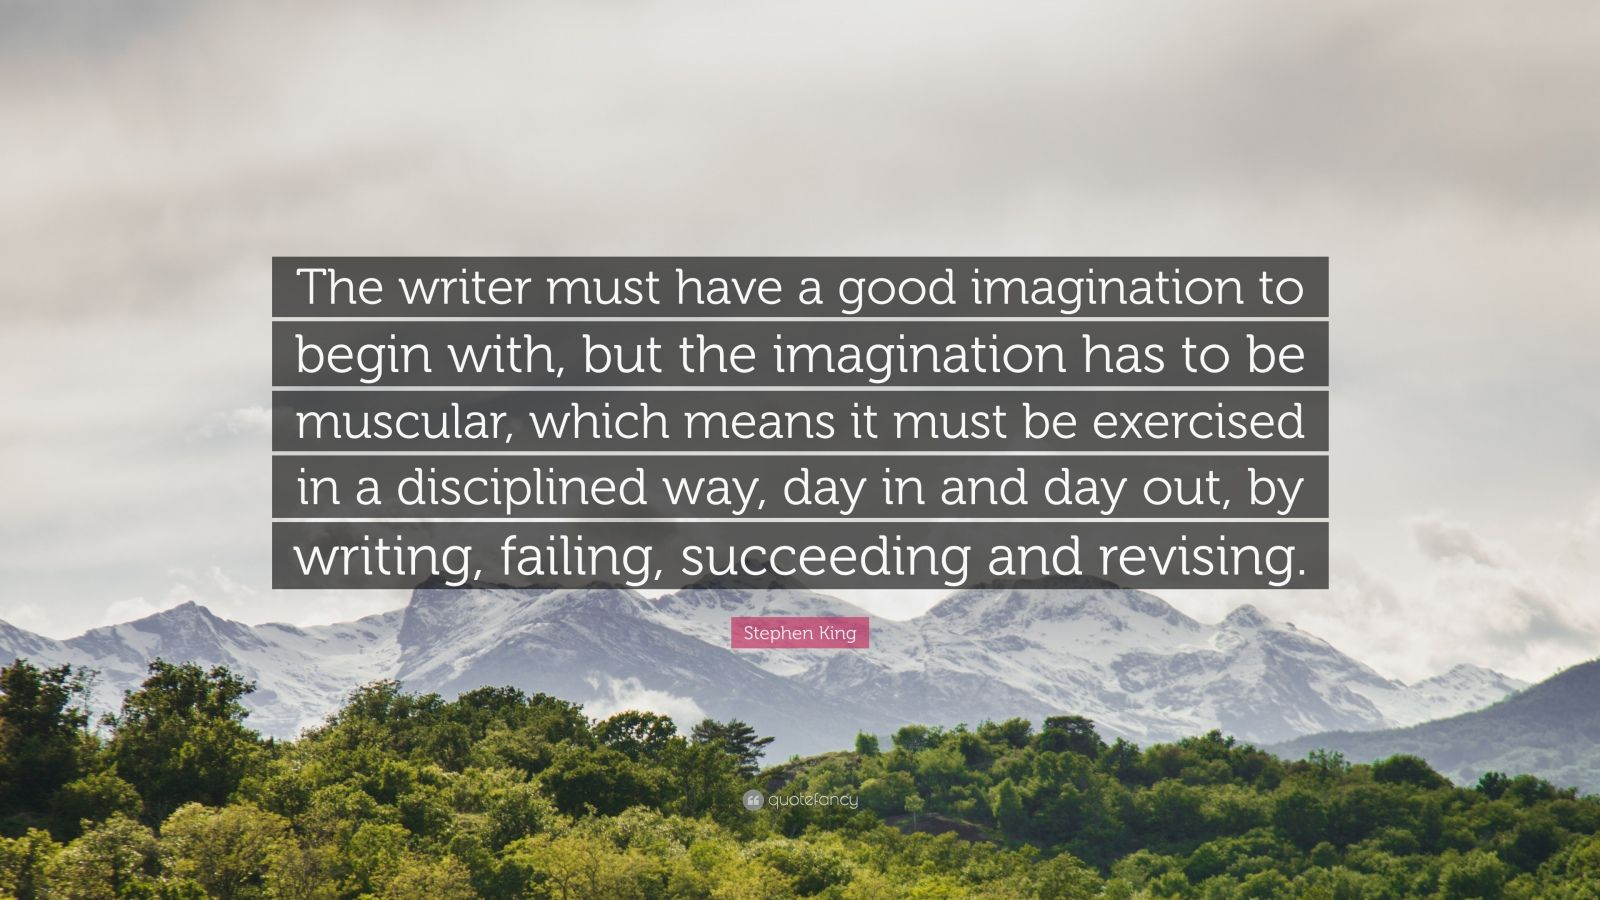 "Stephen King Quote: ""The writer must have a good imagination to begin with, but the imagination has to be muscular, which means it must be exercised in a disciplined way, day in and day out, by writing, failing, succeeding and revising."""